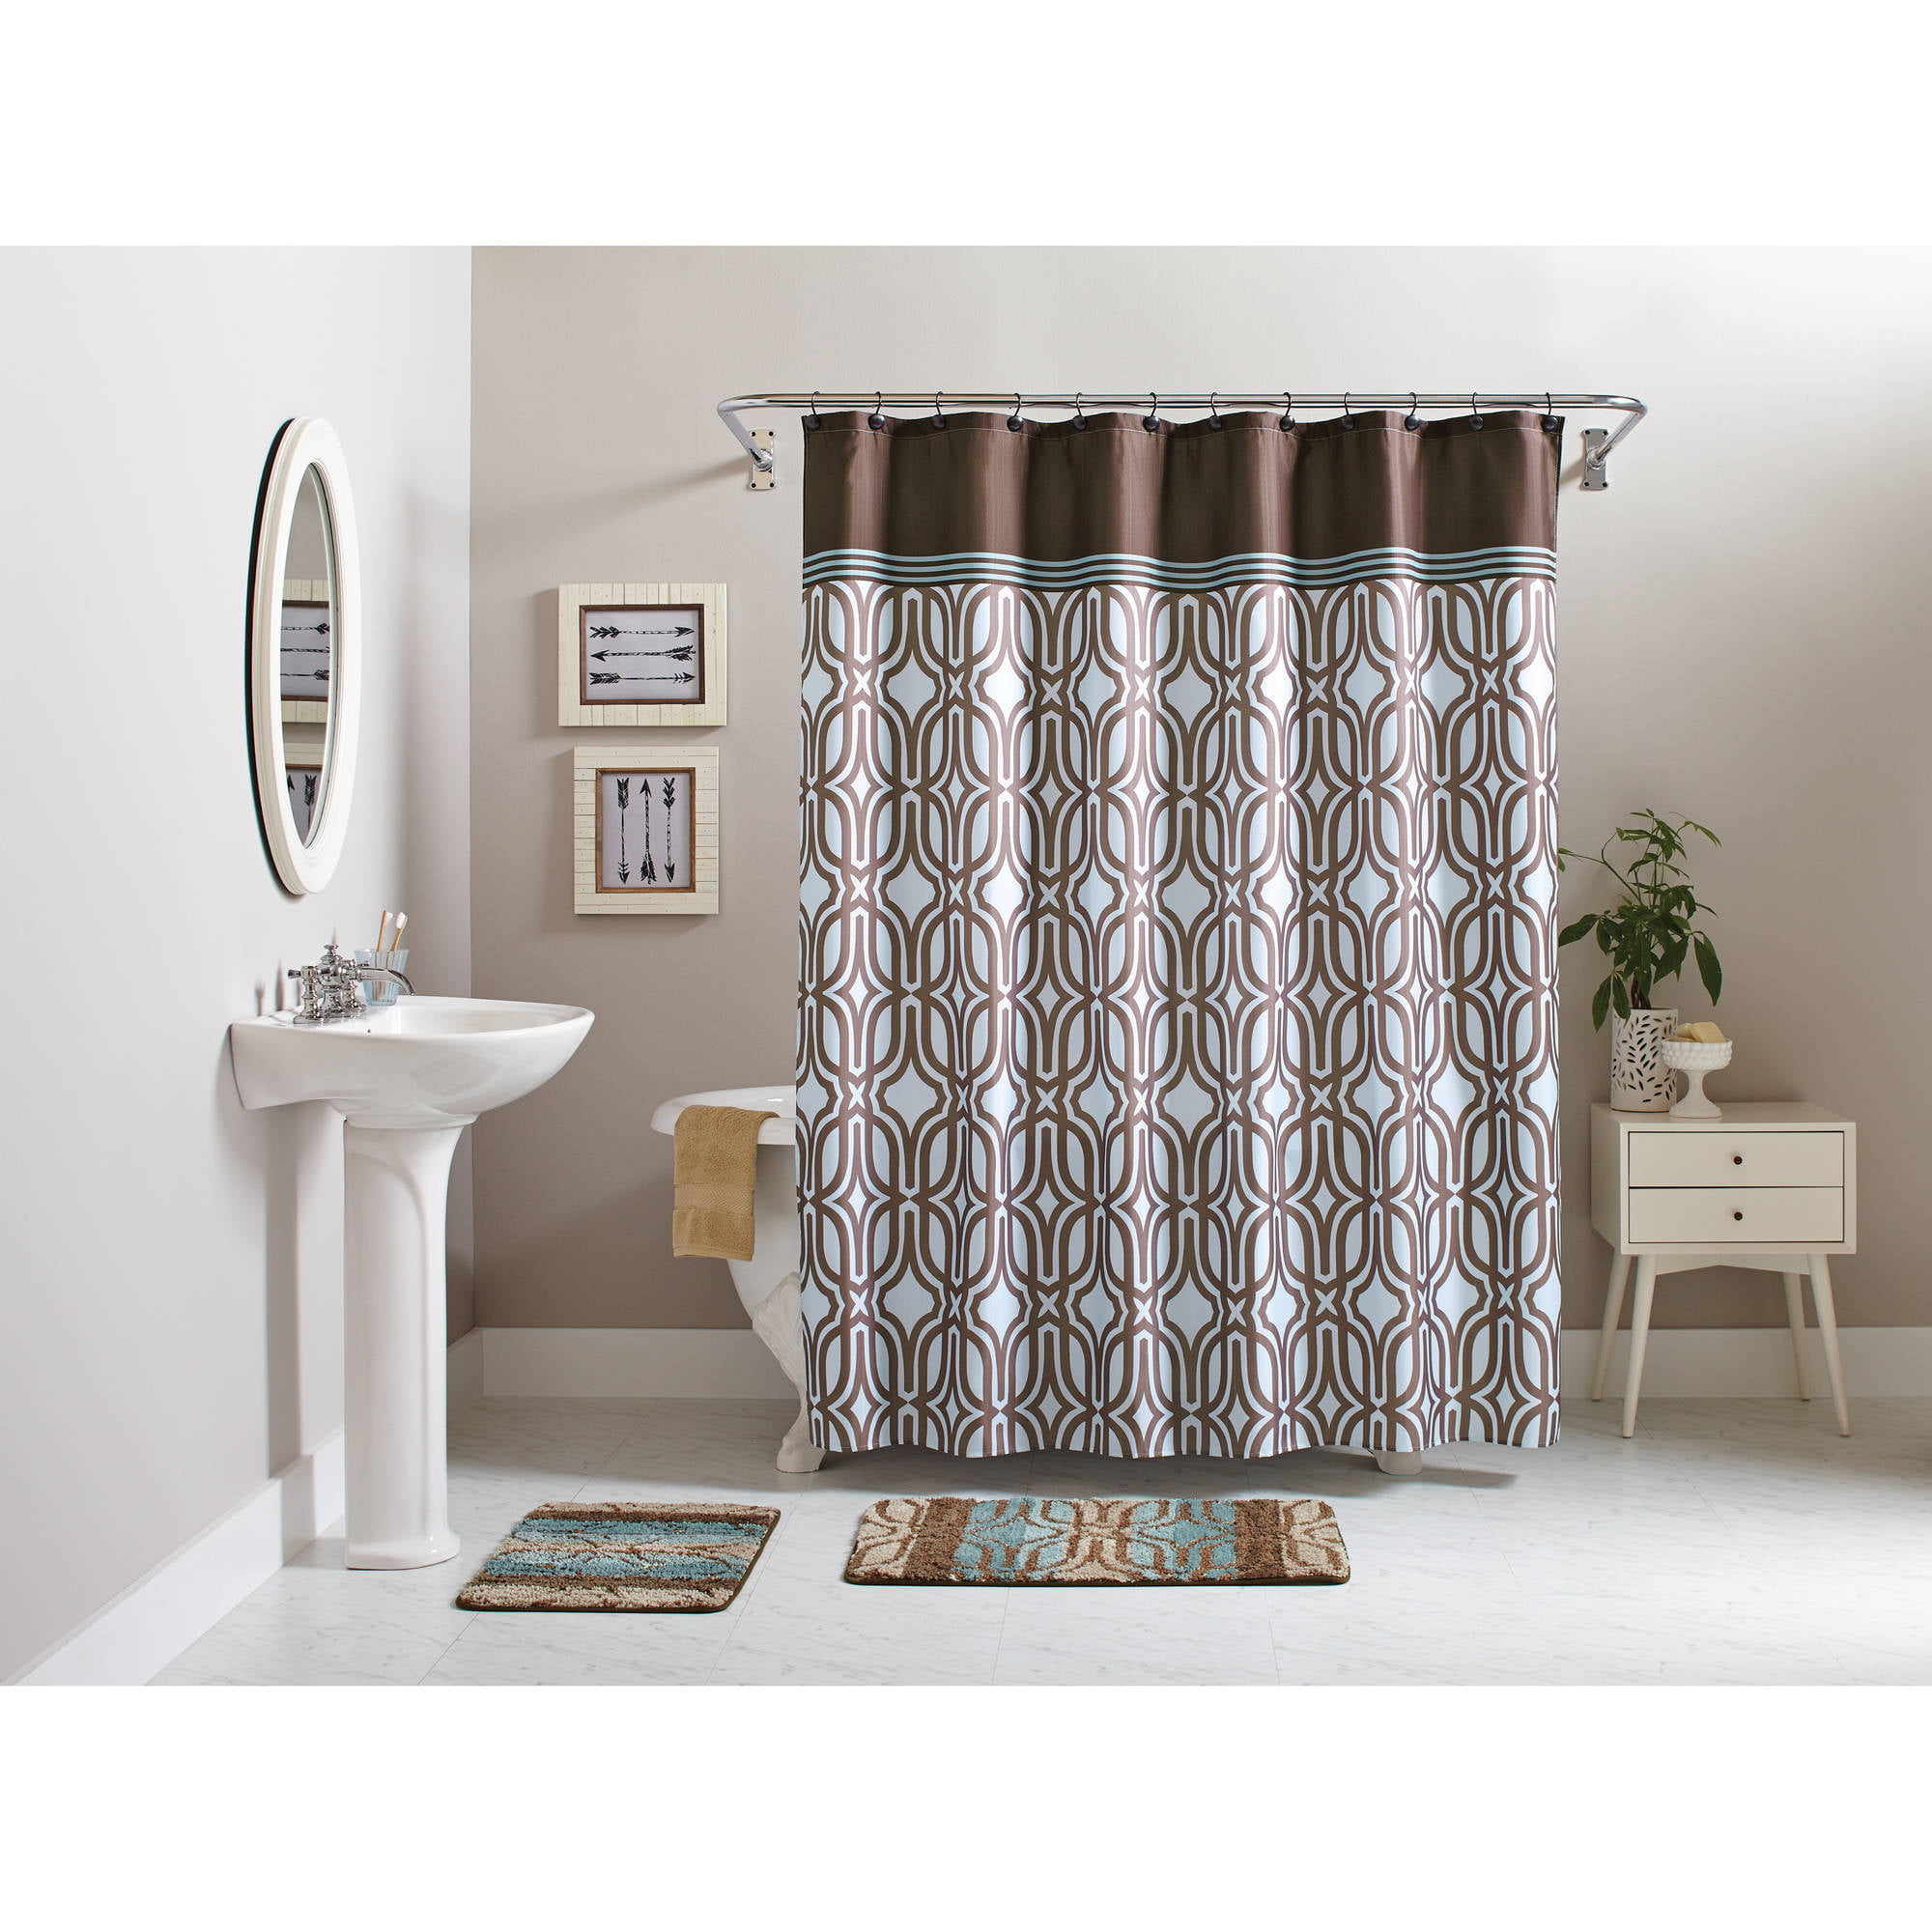 curtain bath sets wayfair shower alaysia design curtains set bathroom bed zipcode piece reviews pdx